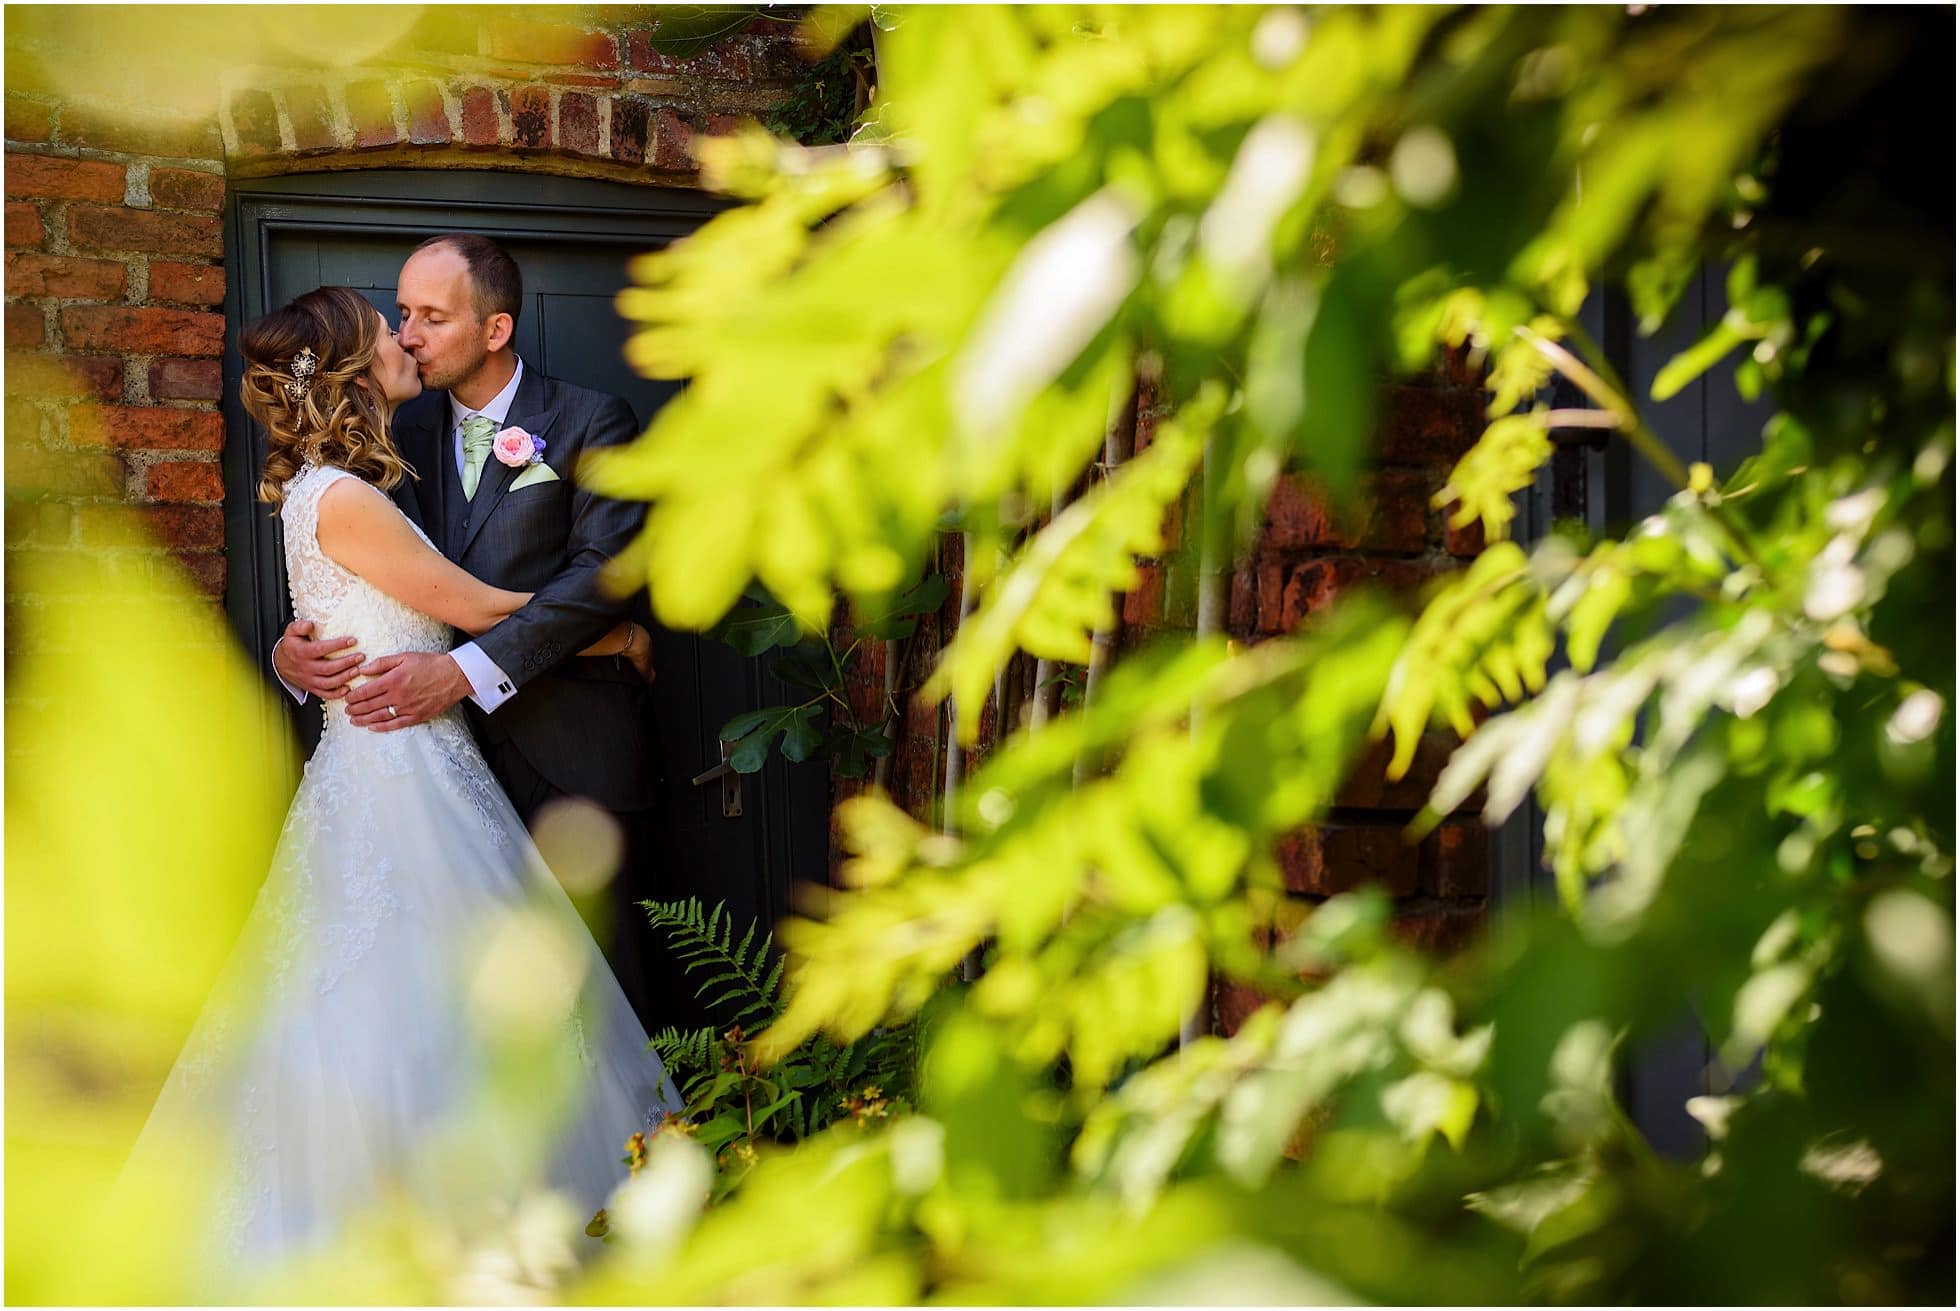 Peckover House Wedding Venue